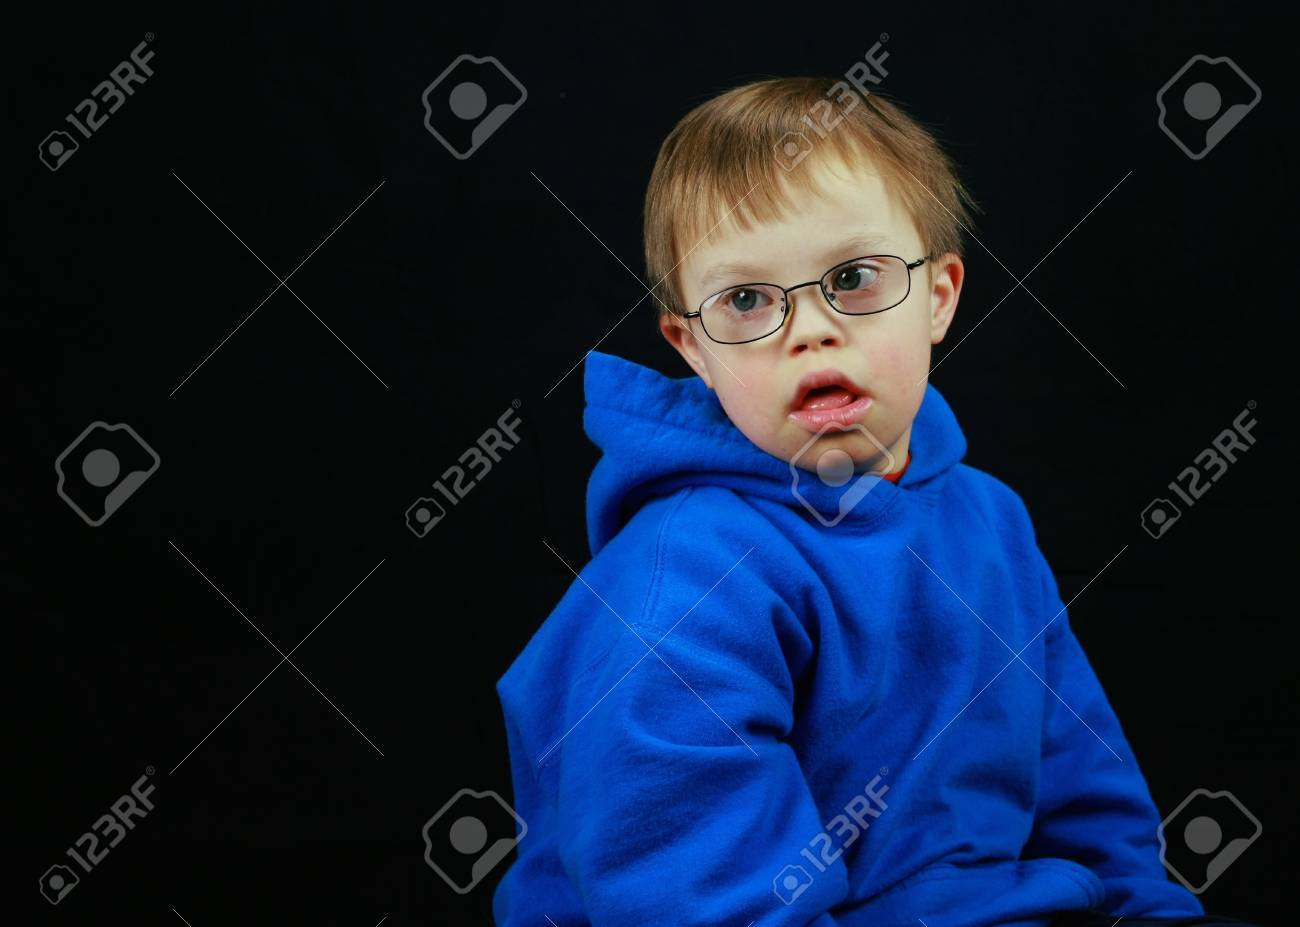 Little boy with Downs Syndrome Stock Photo - 9305650